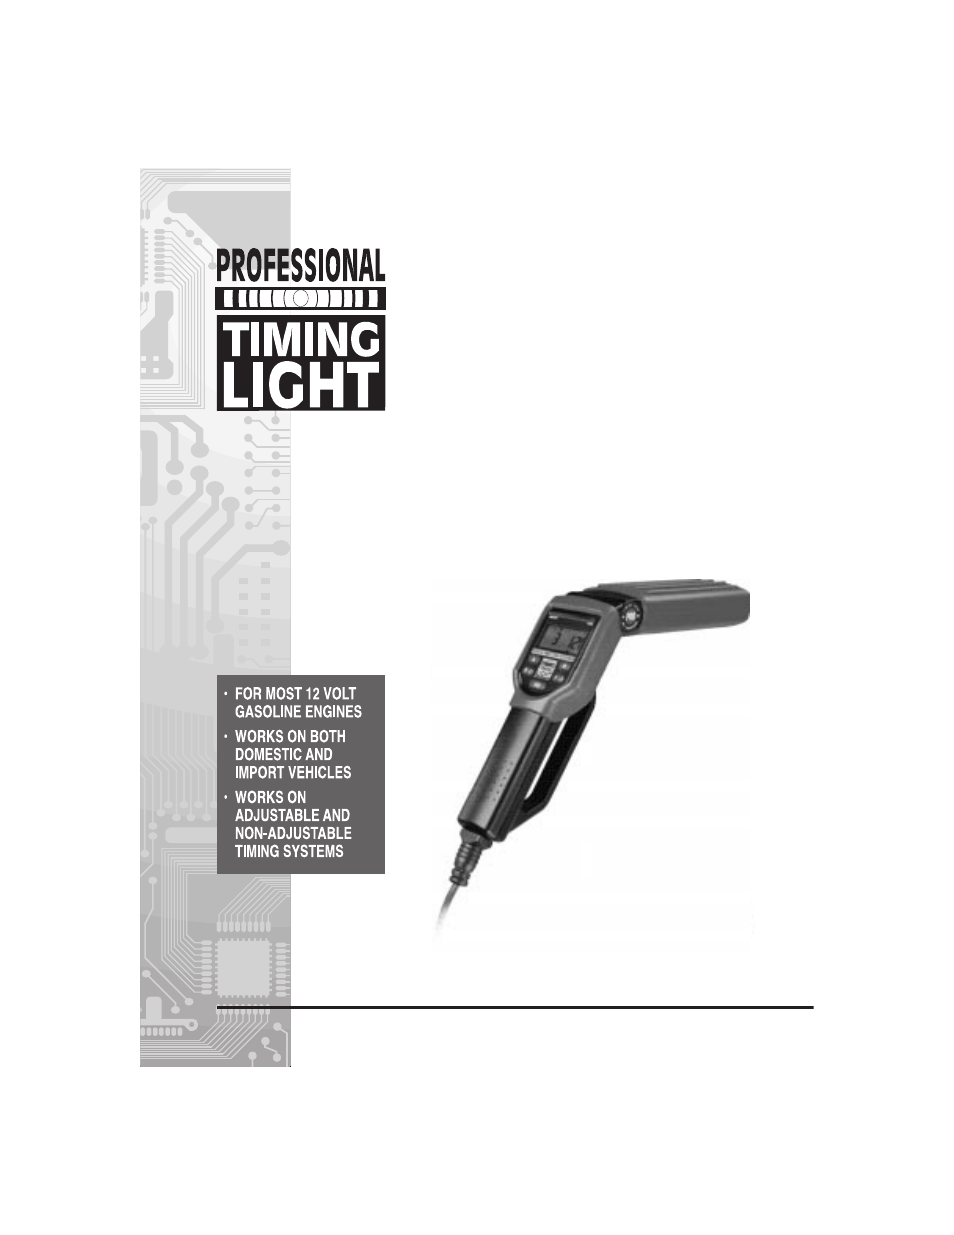 craftsman professional timing light manual